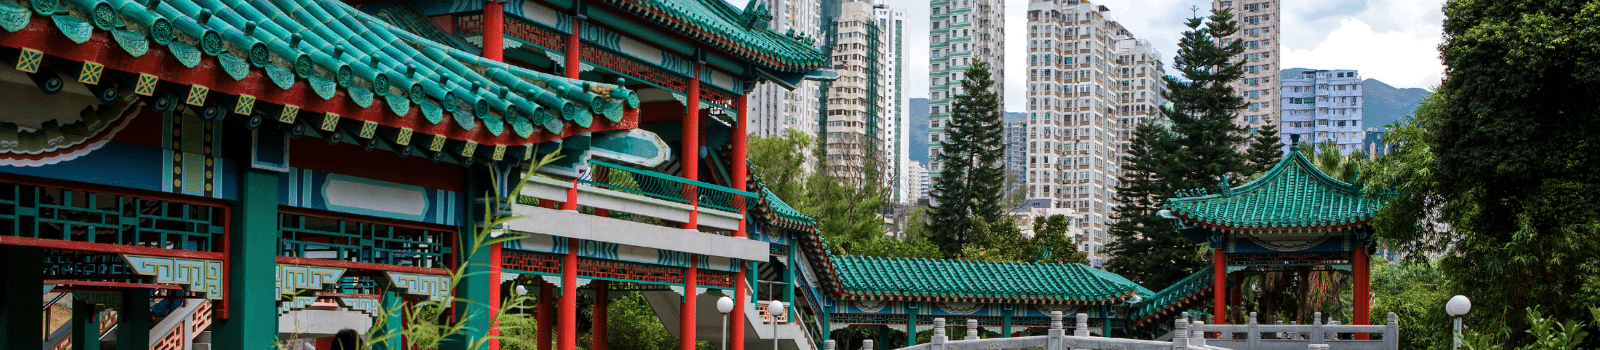 Old and new buildings in Hong Kong